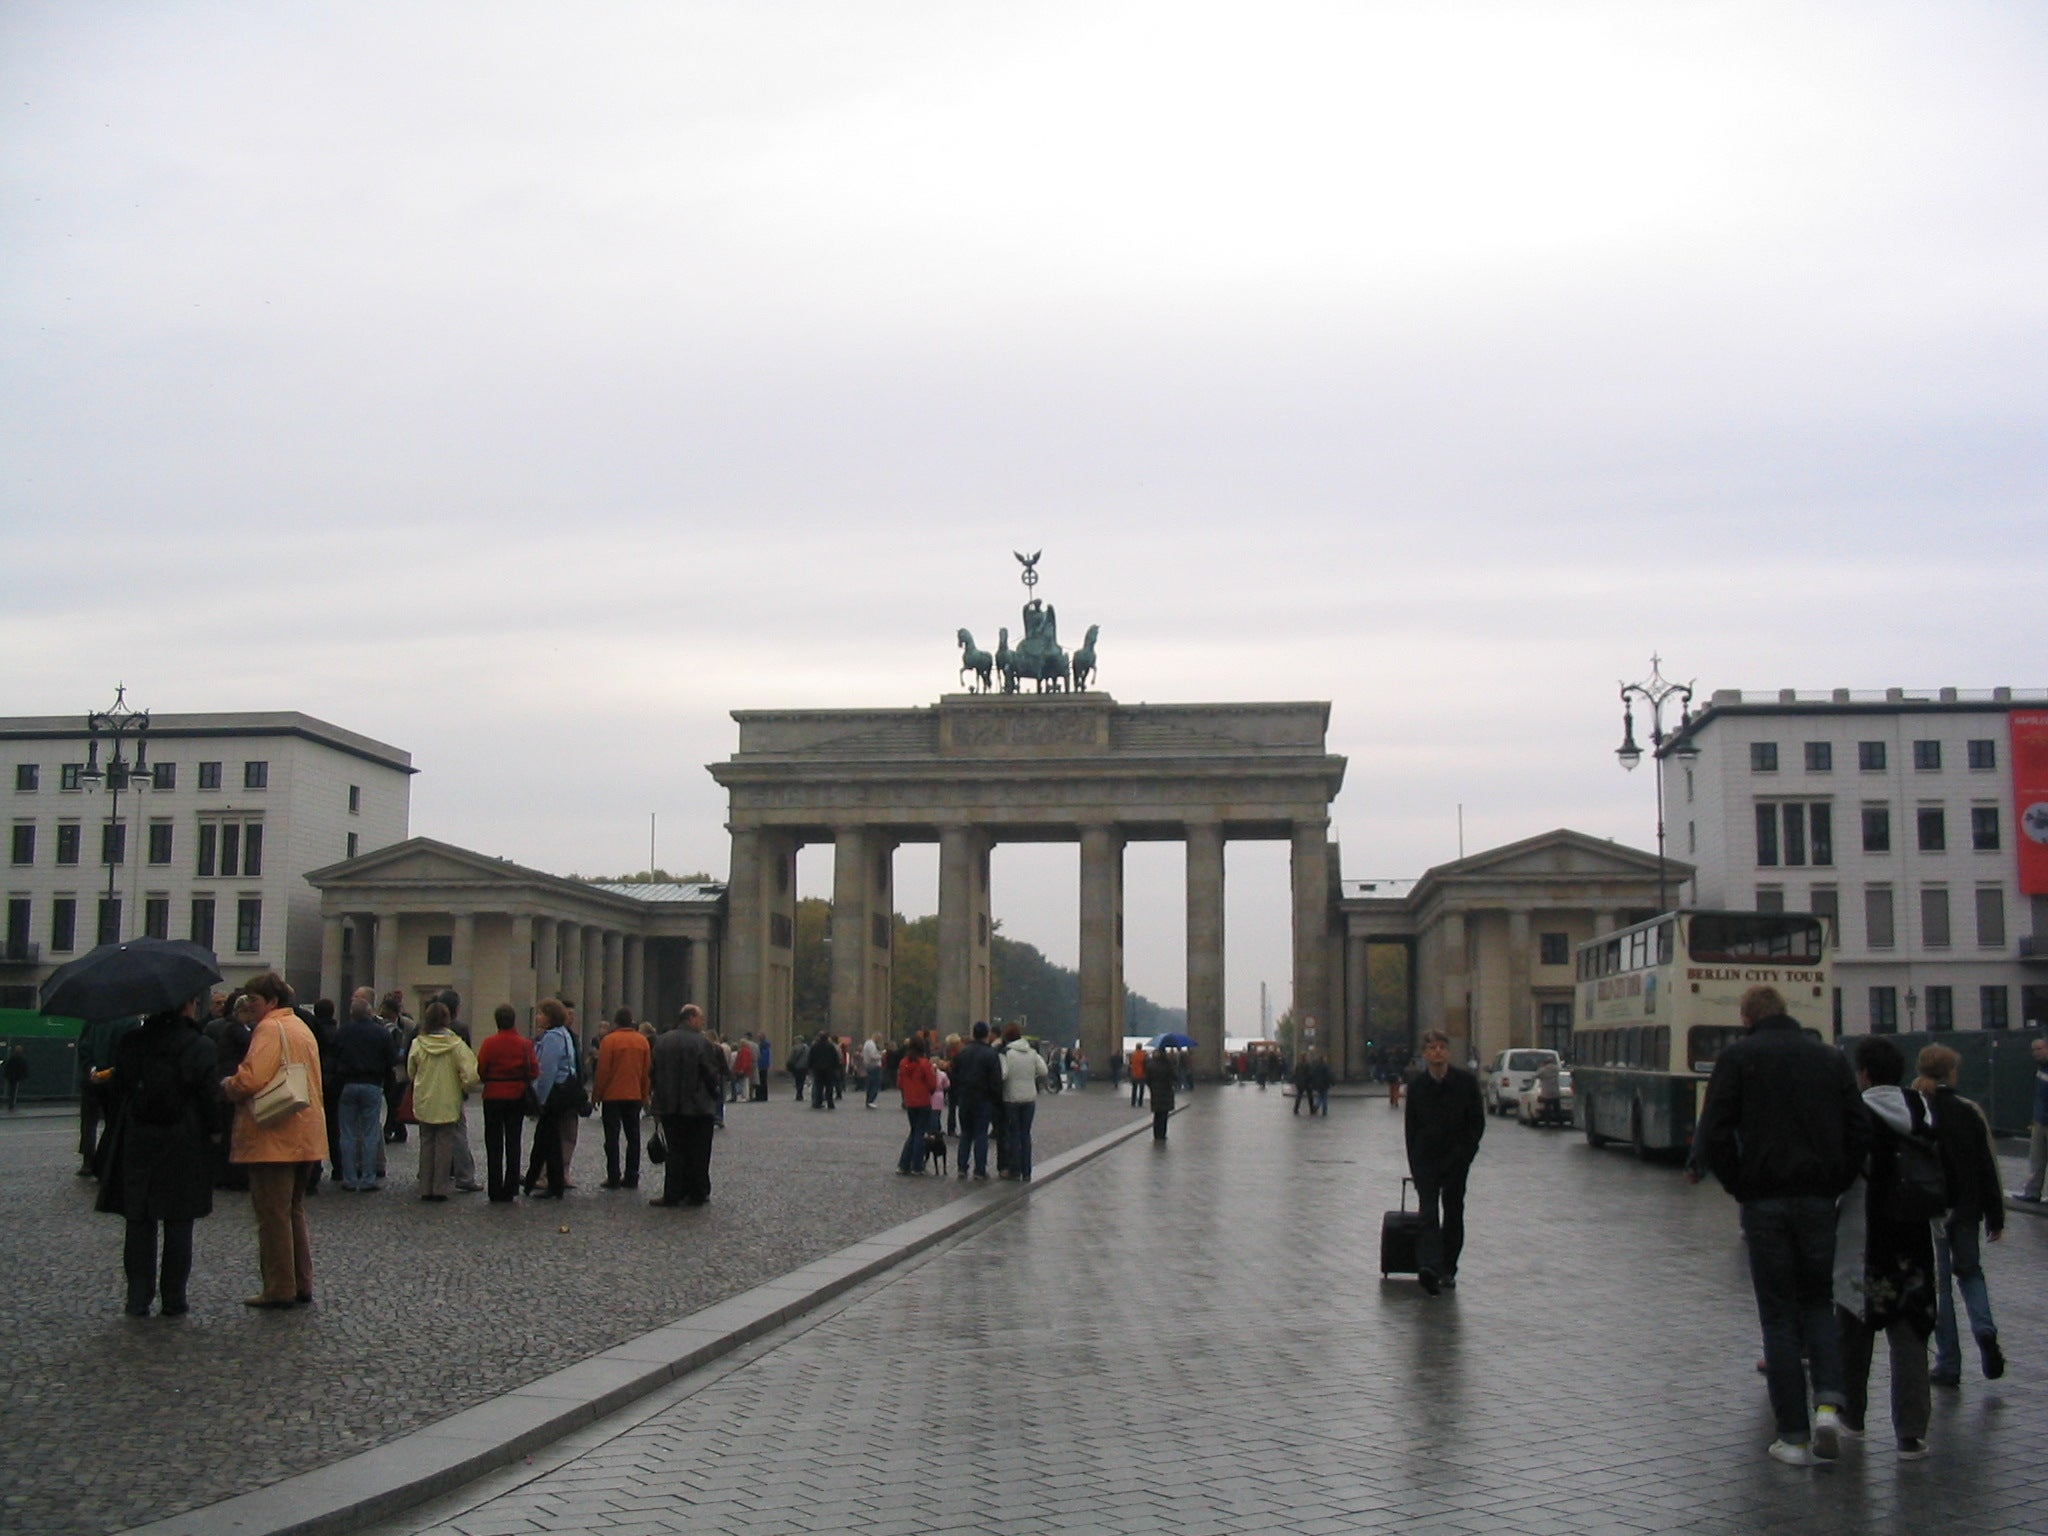 Walkway in Brandenburg Gate